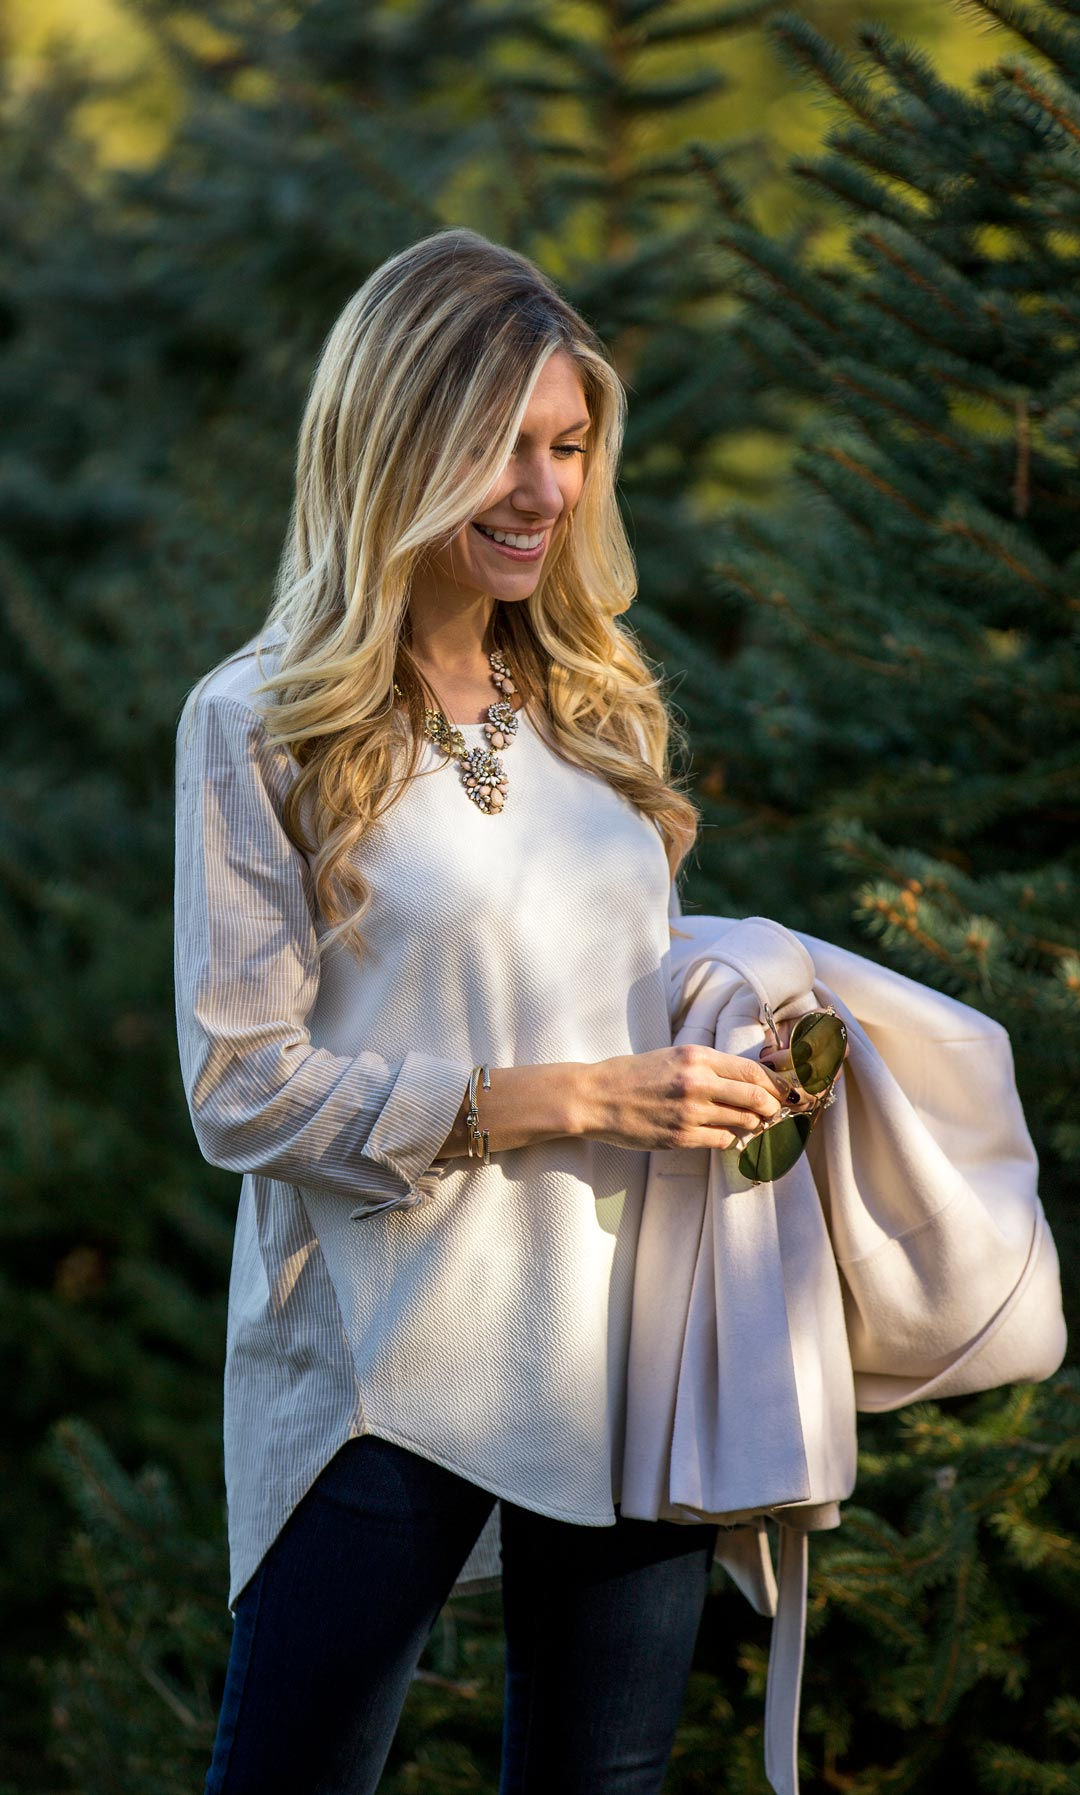 White oversized top and statement necklace